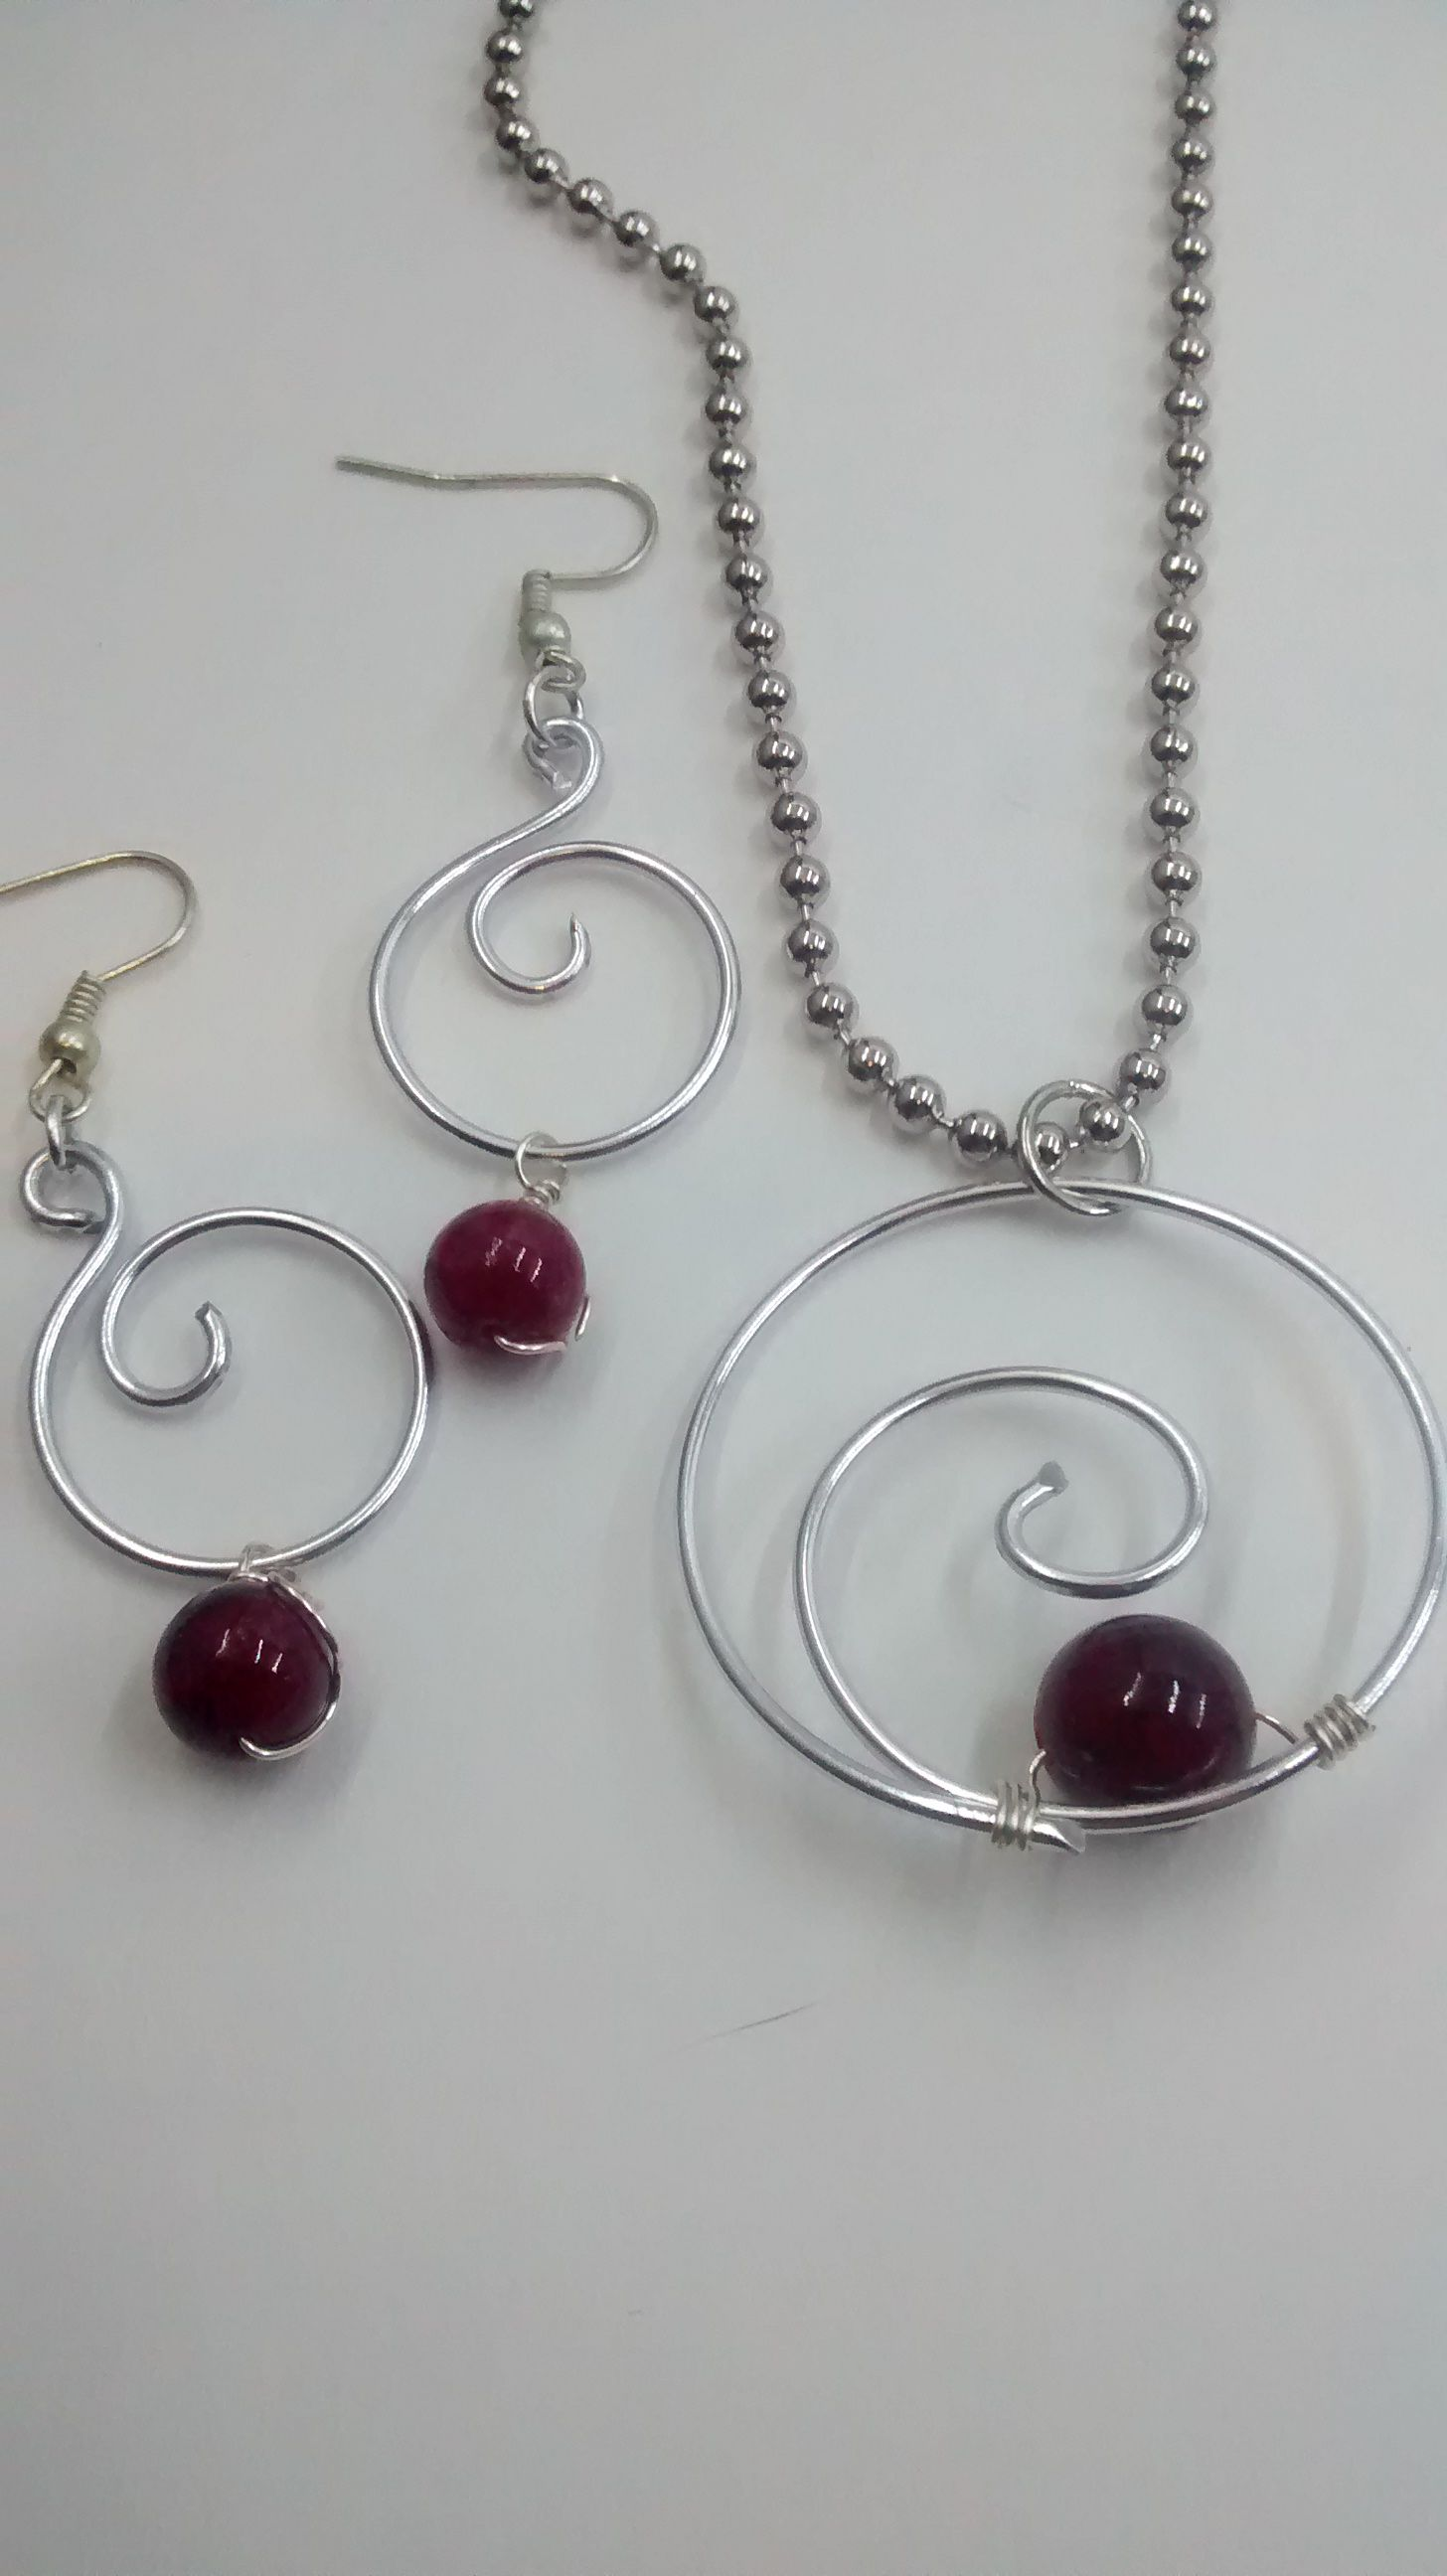 Wire+wrapped+glass+beads+in+a+matching+set+of+necklace+and+earrings ...